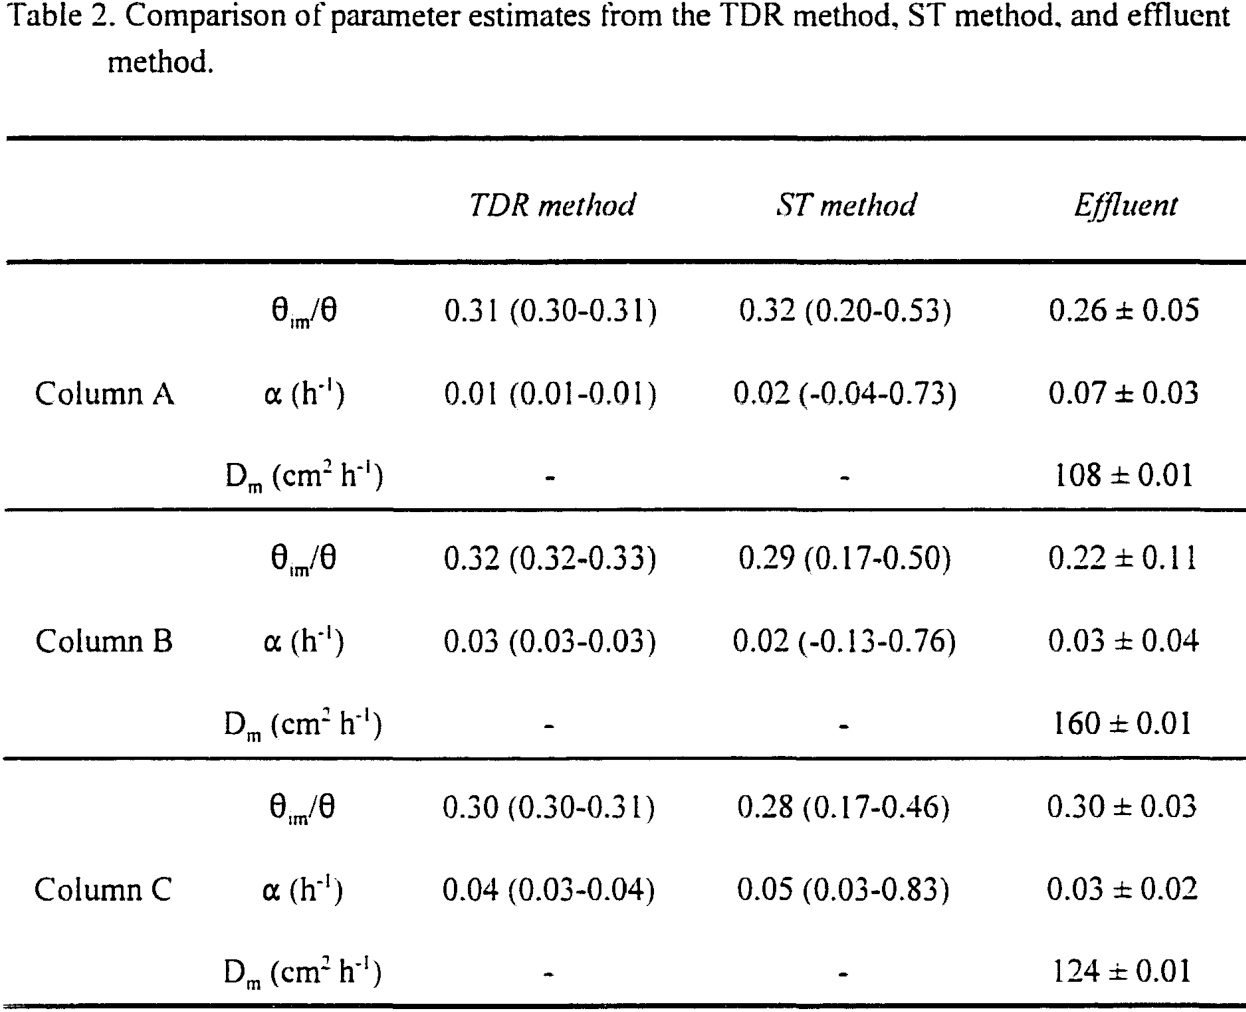 Table 2. Comparison of parameter estimates from the TDR method, ST method, and effluent method.